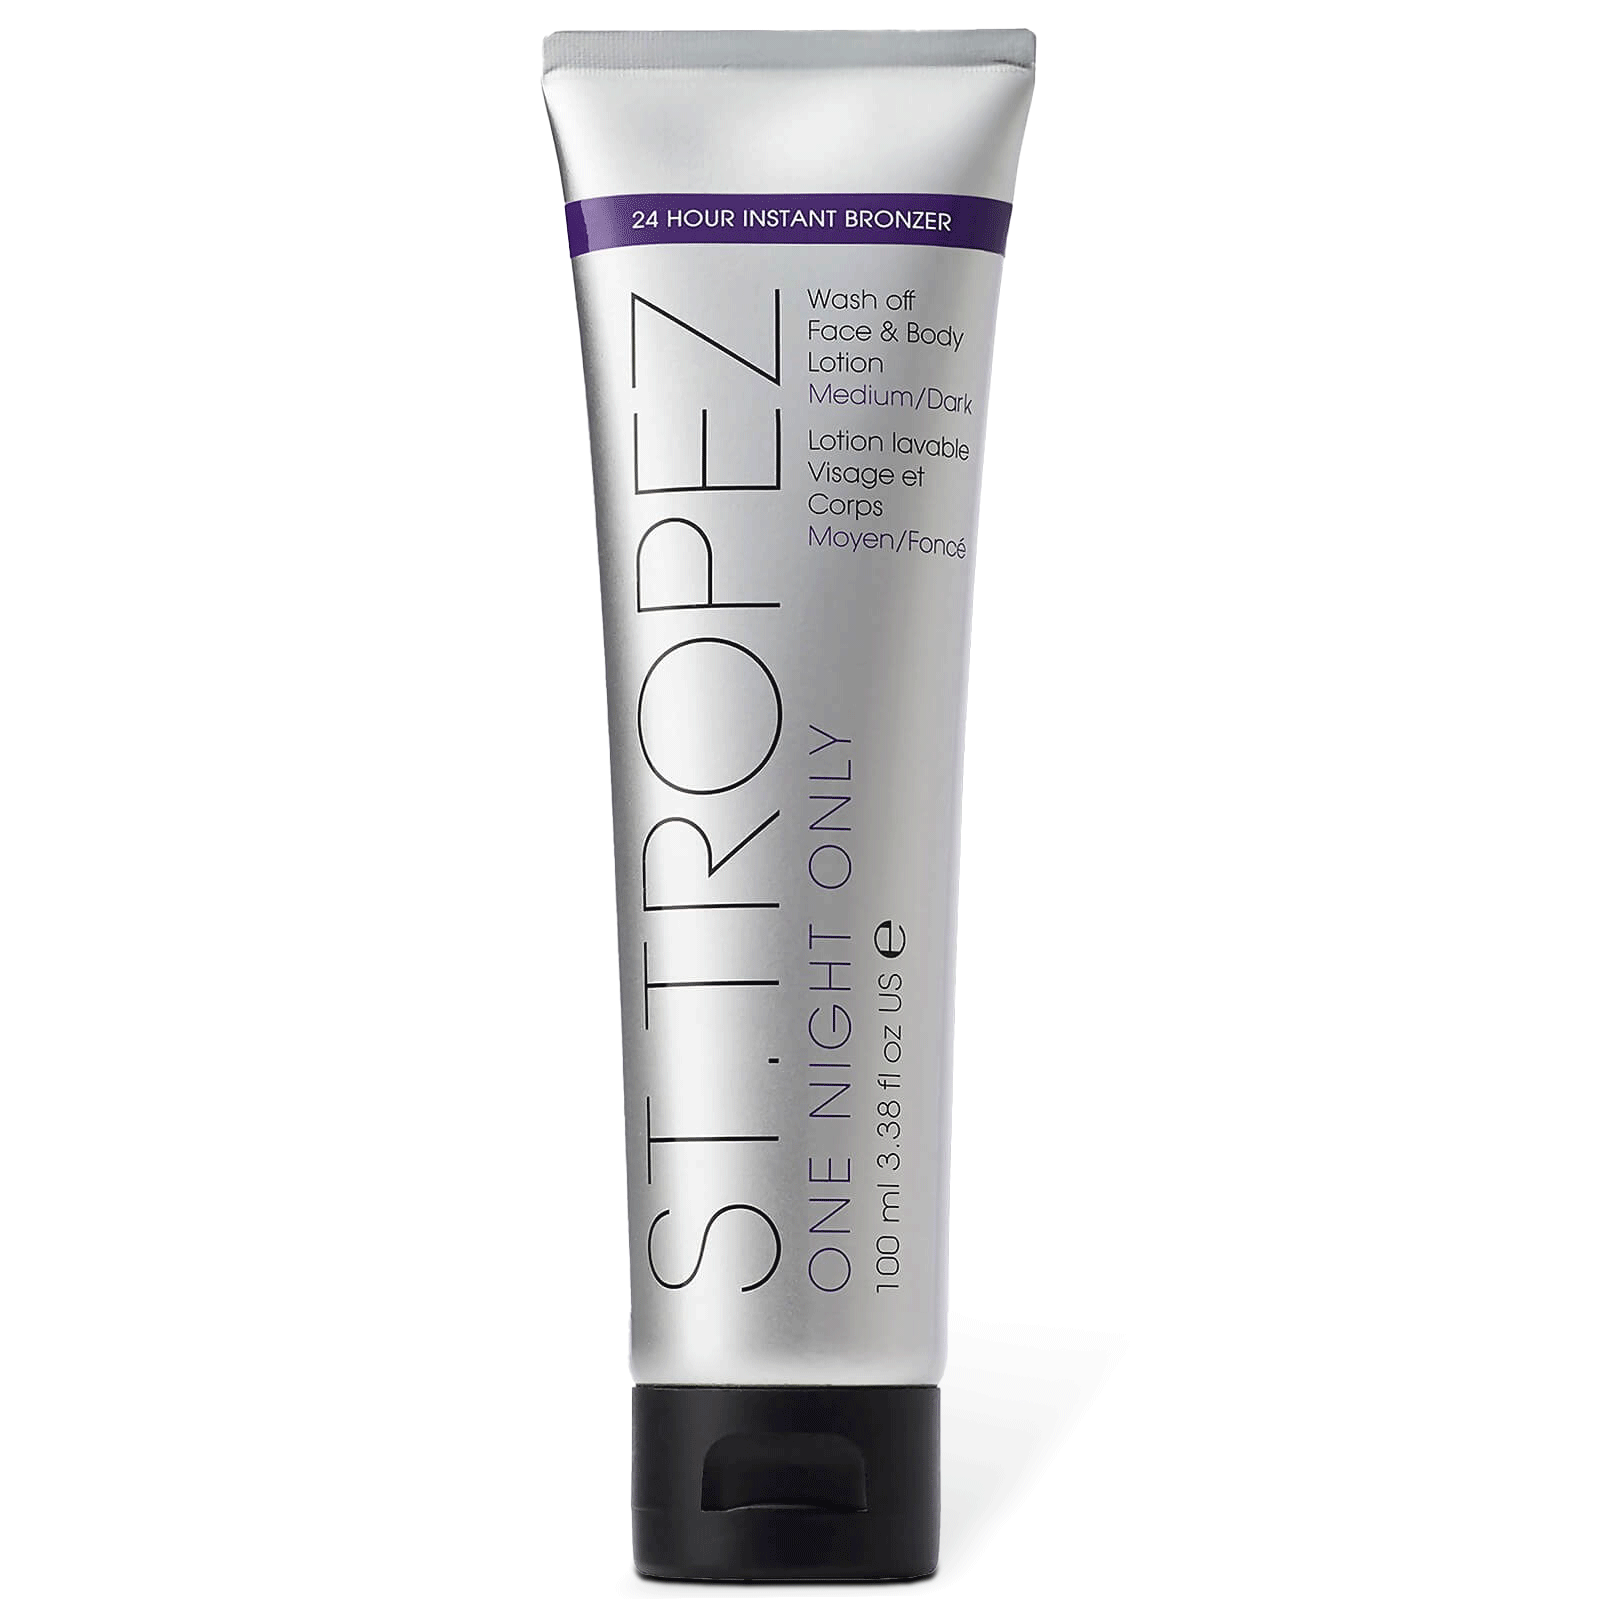 St Tropez Instant Tan Face & Body Lotion Med/dark